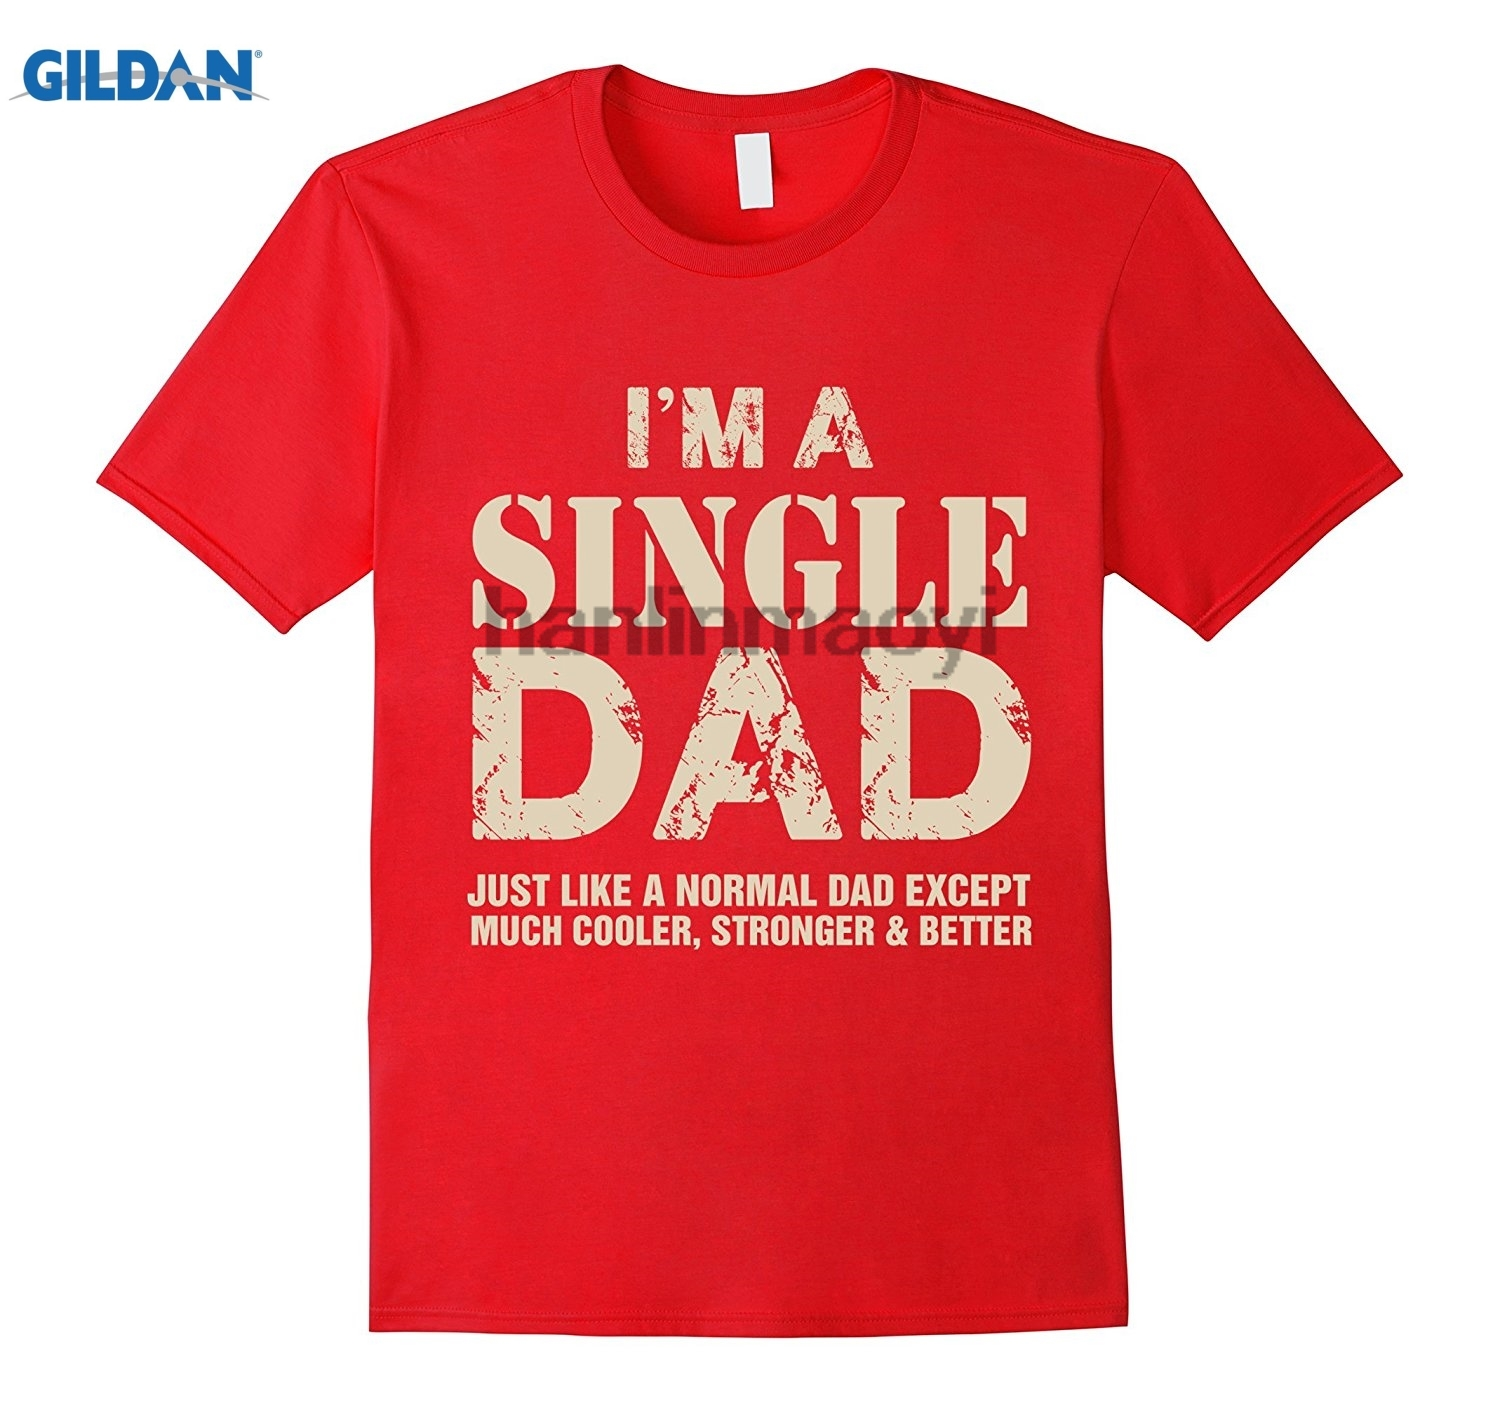 GILDAN Mens Single Dad Gifts Father Day Gift Single Dad Cooler T-shirt